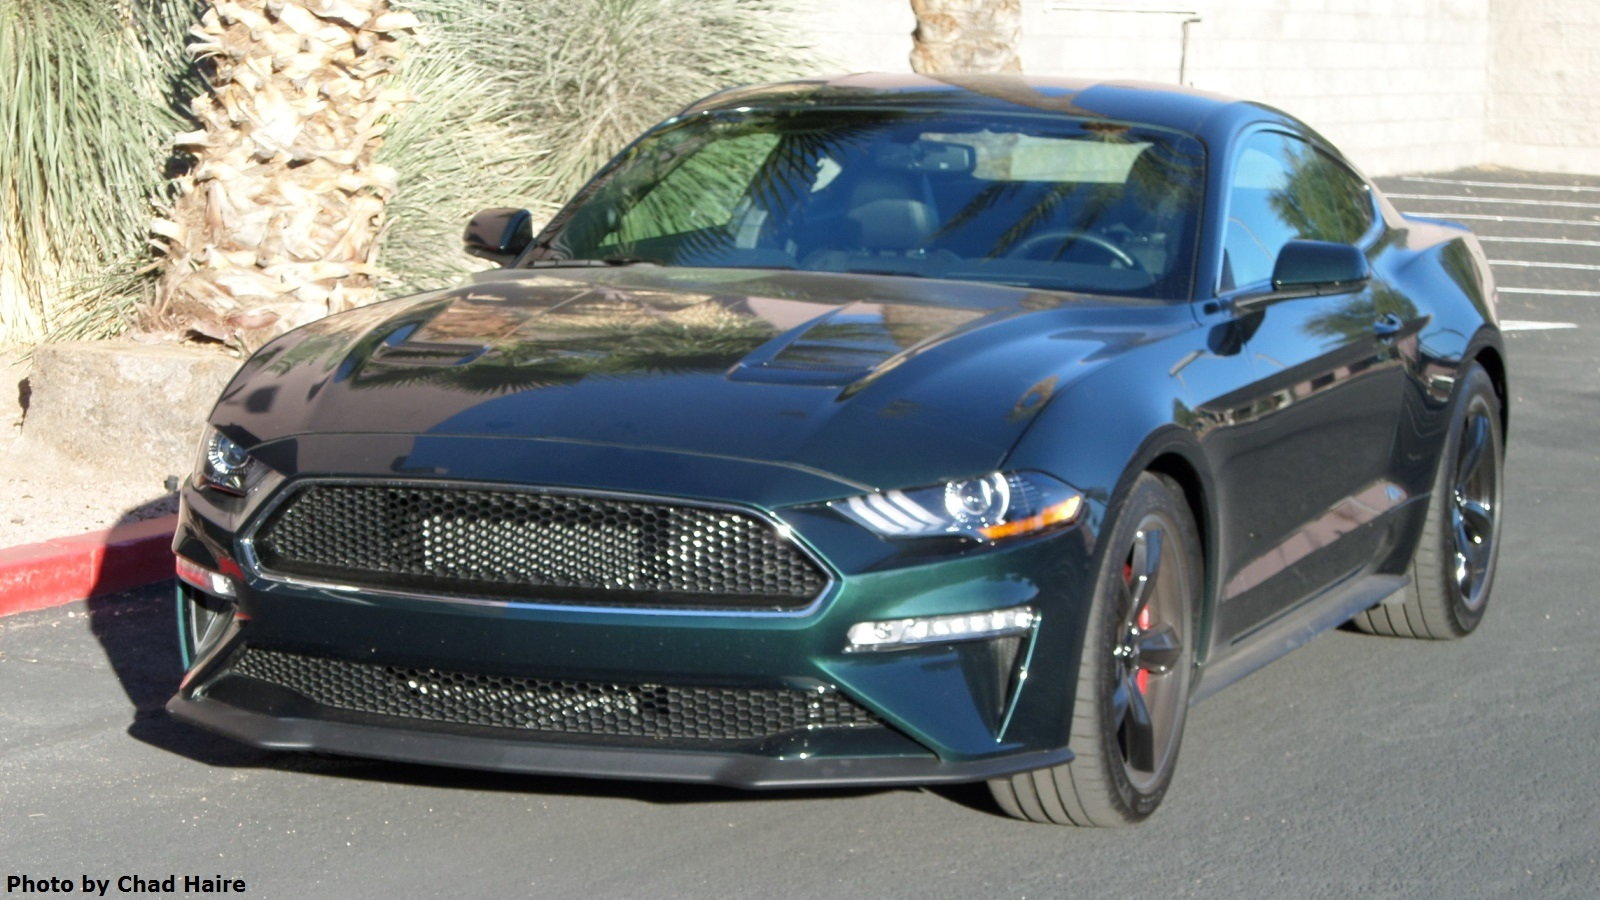 2019 Ford Mustang Bullitt Up Close and Personal